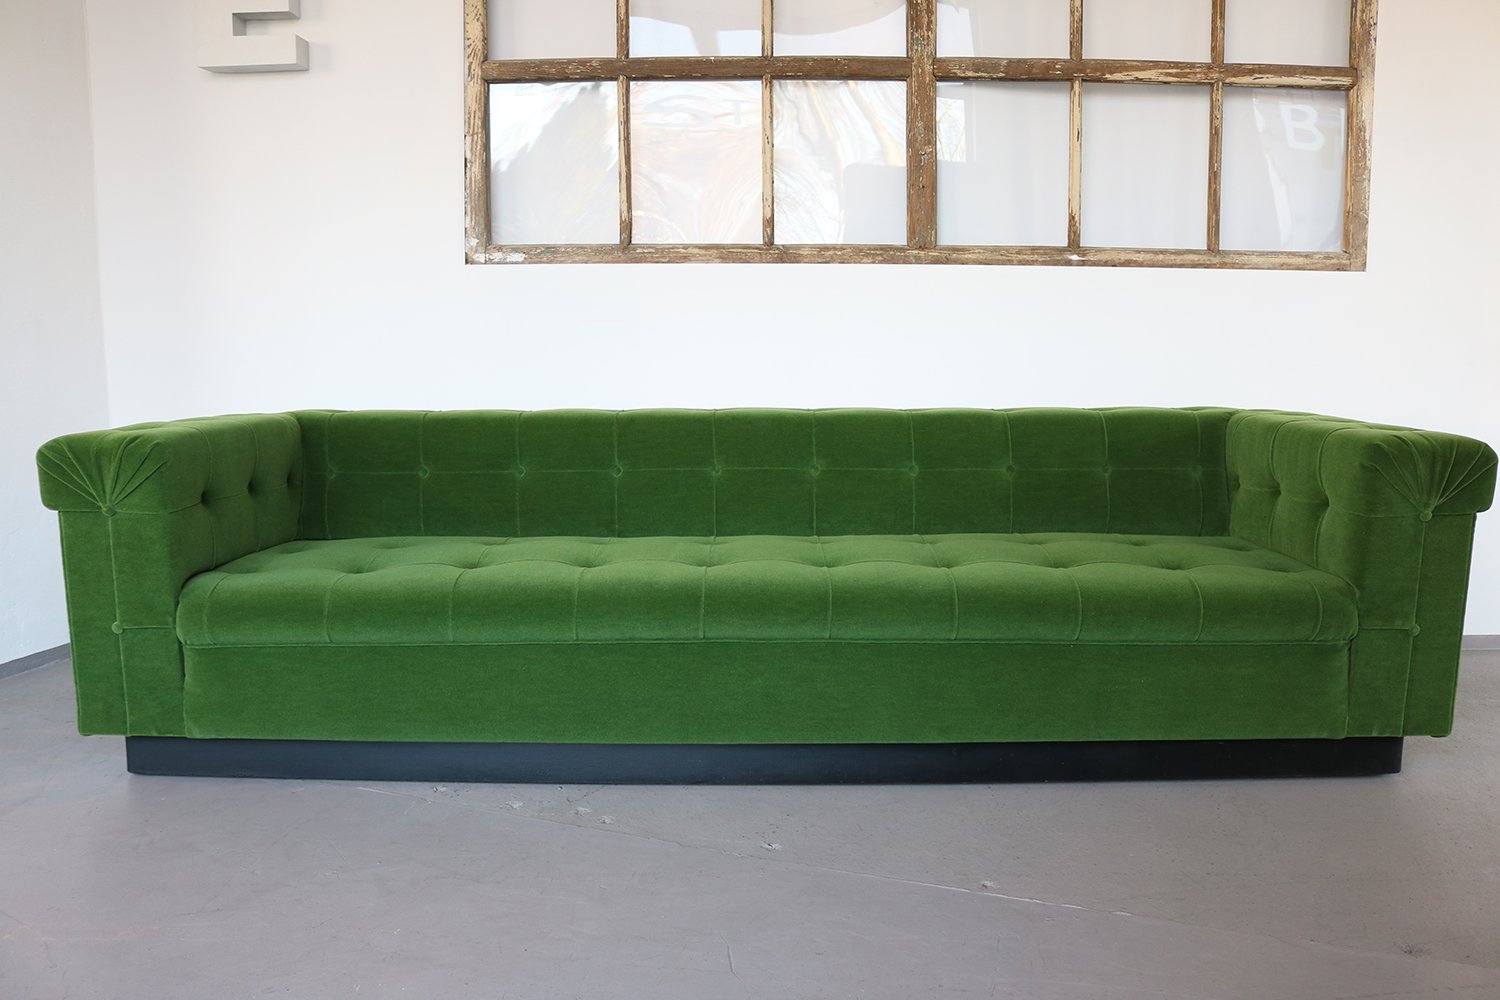 Party Sofa By Edward Wormley For Dunbar 1954